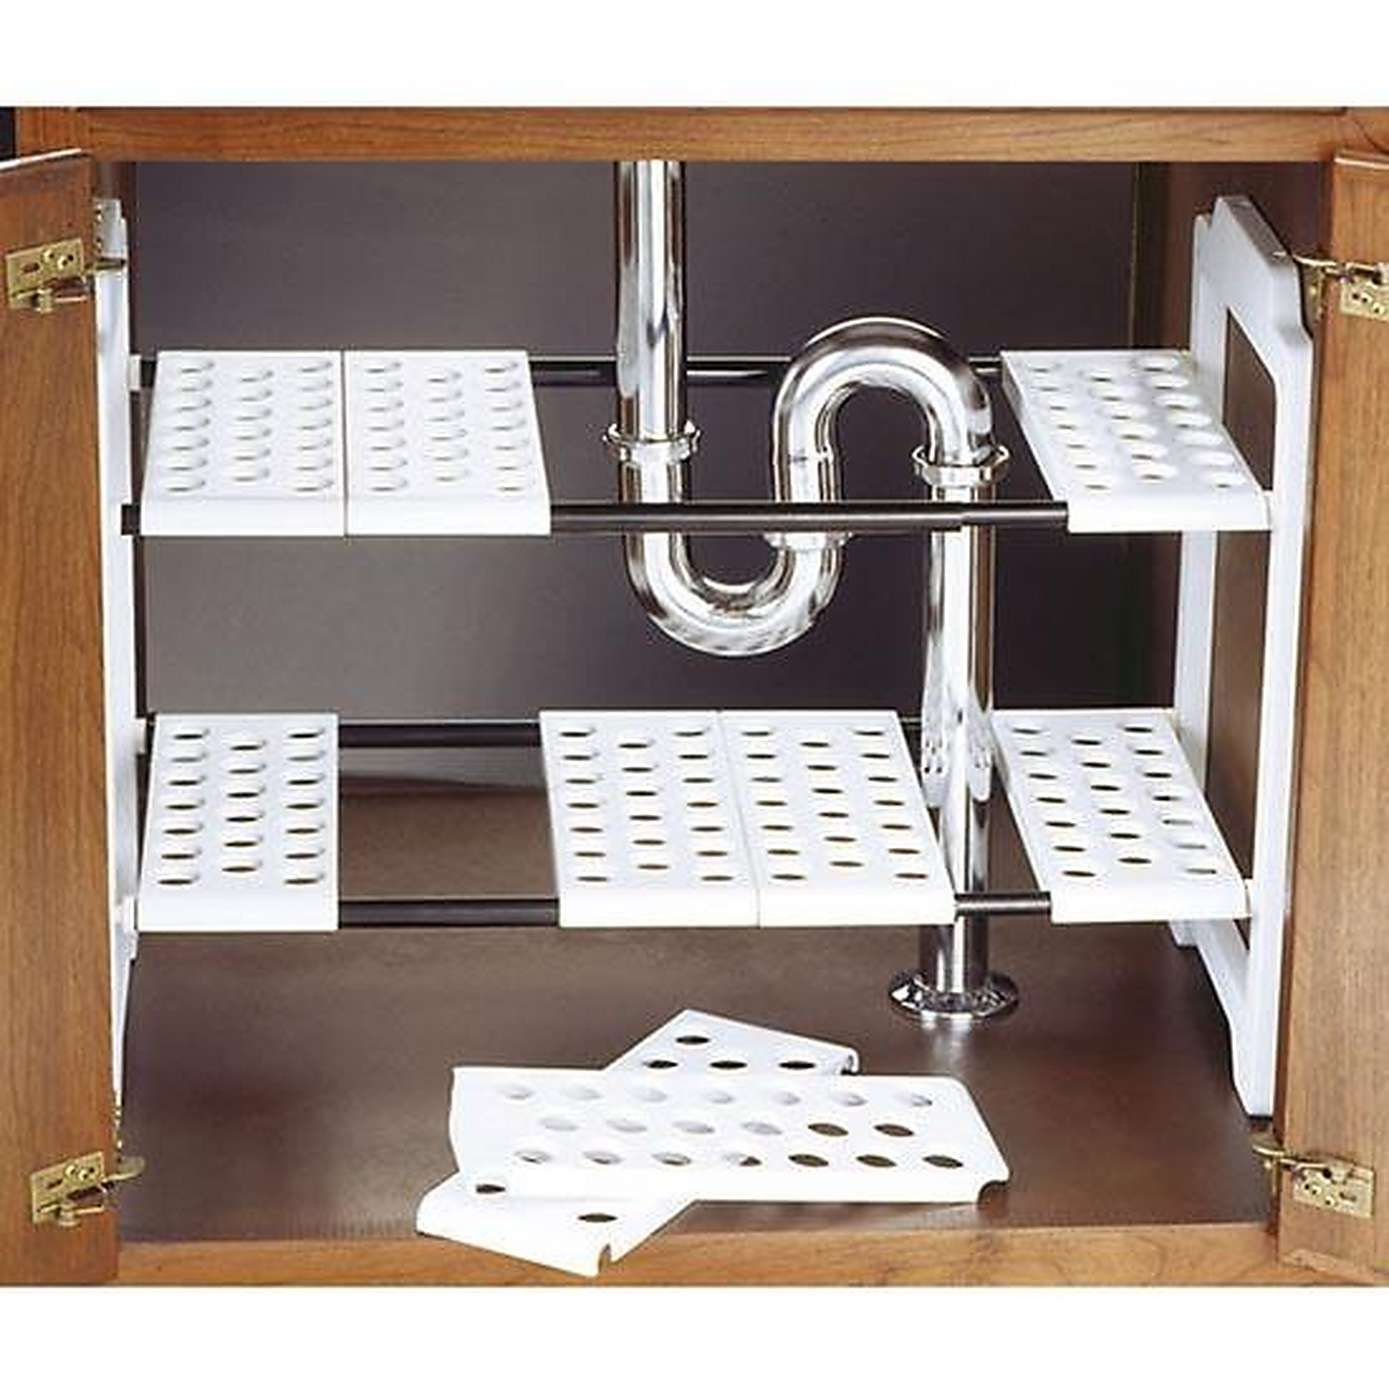 Kitchen Storage Unit Addis Kitchen Sense Under Sink Storage Unit  Sinks Storage And